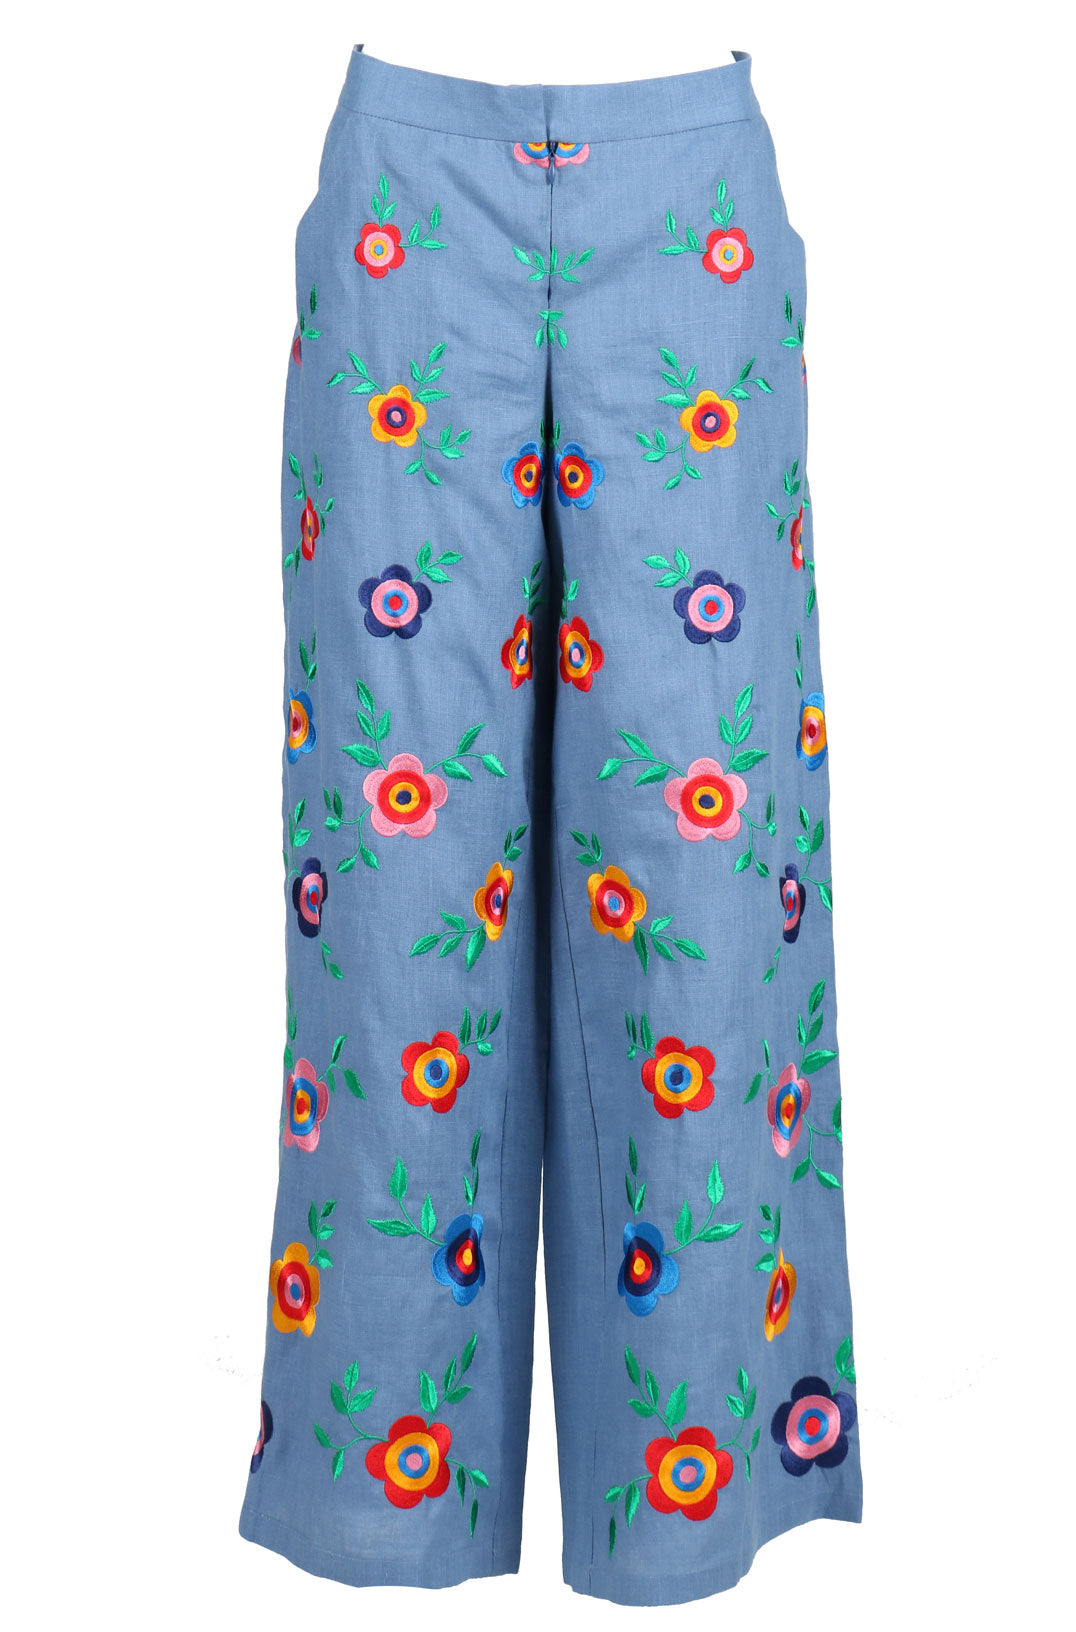 Fanm Mon HIPPY Vyshyvanka Pants Embroidered Denim Blue Linen Multi Color Floral Embroidered Pants